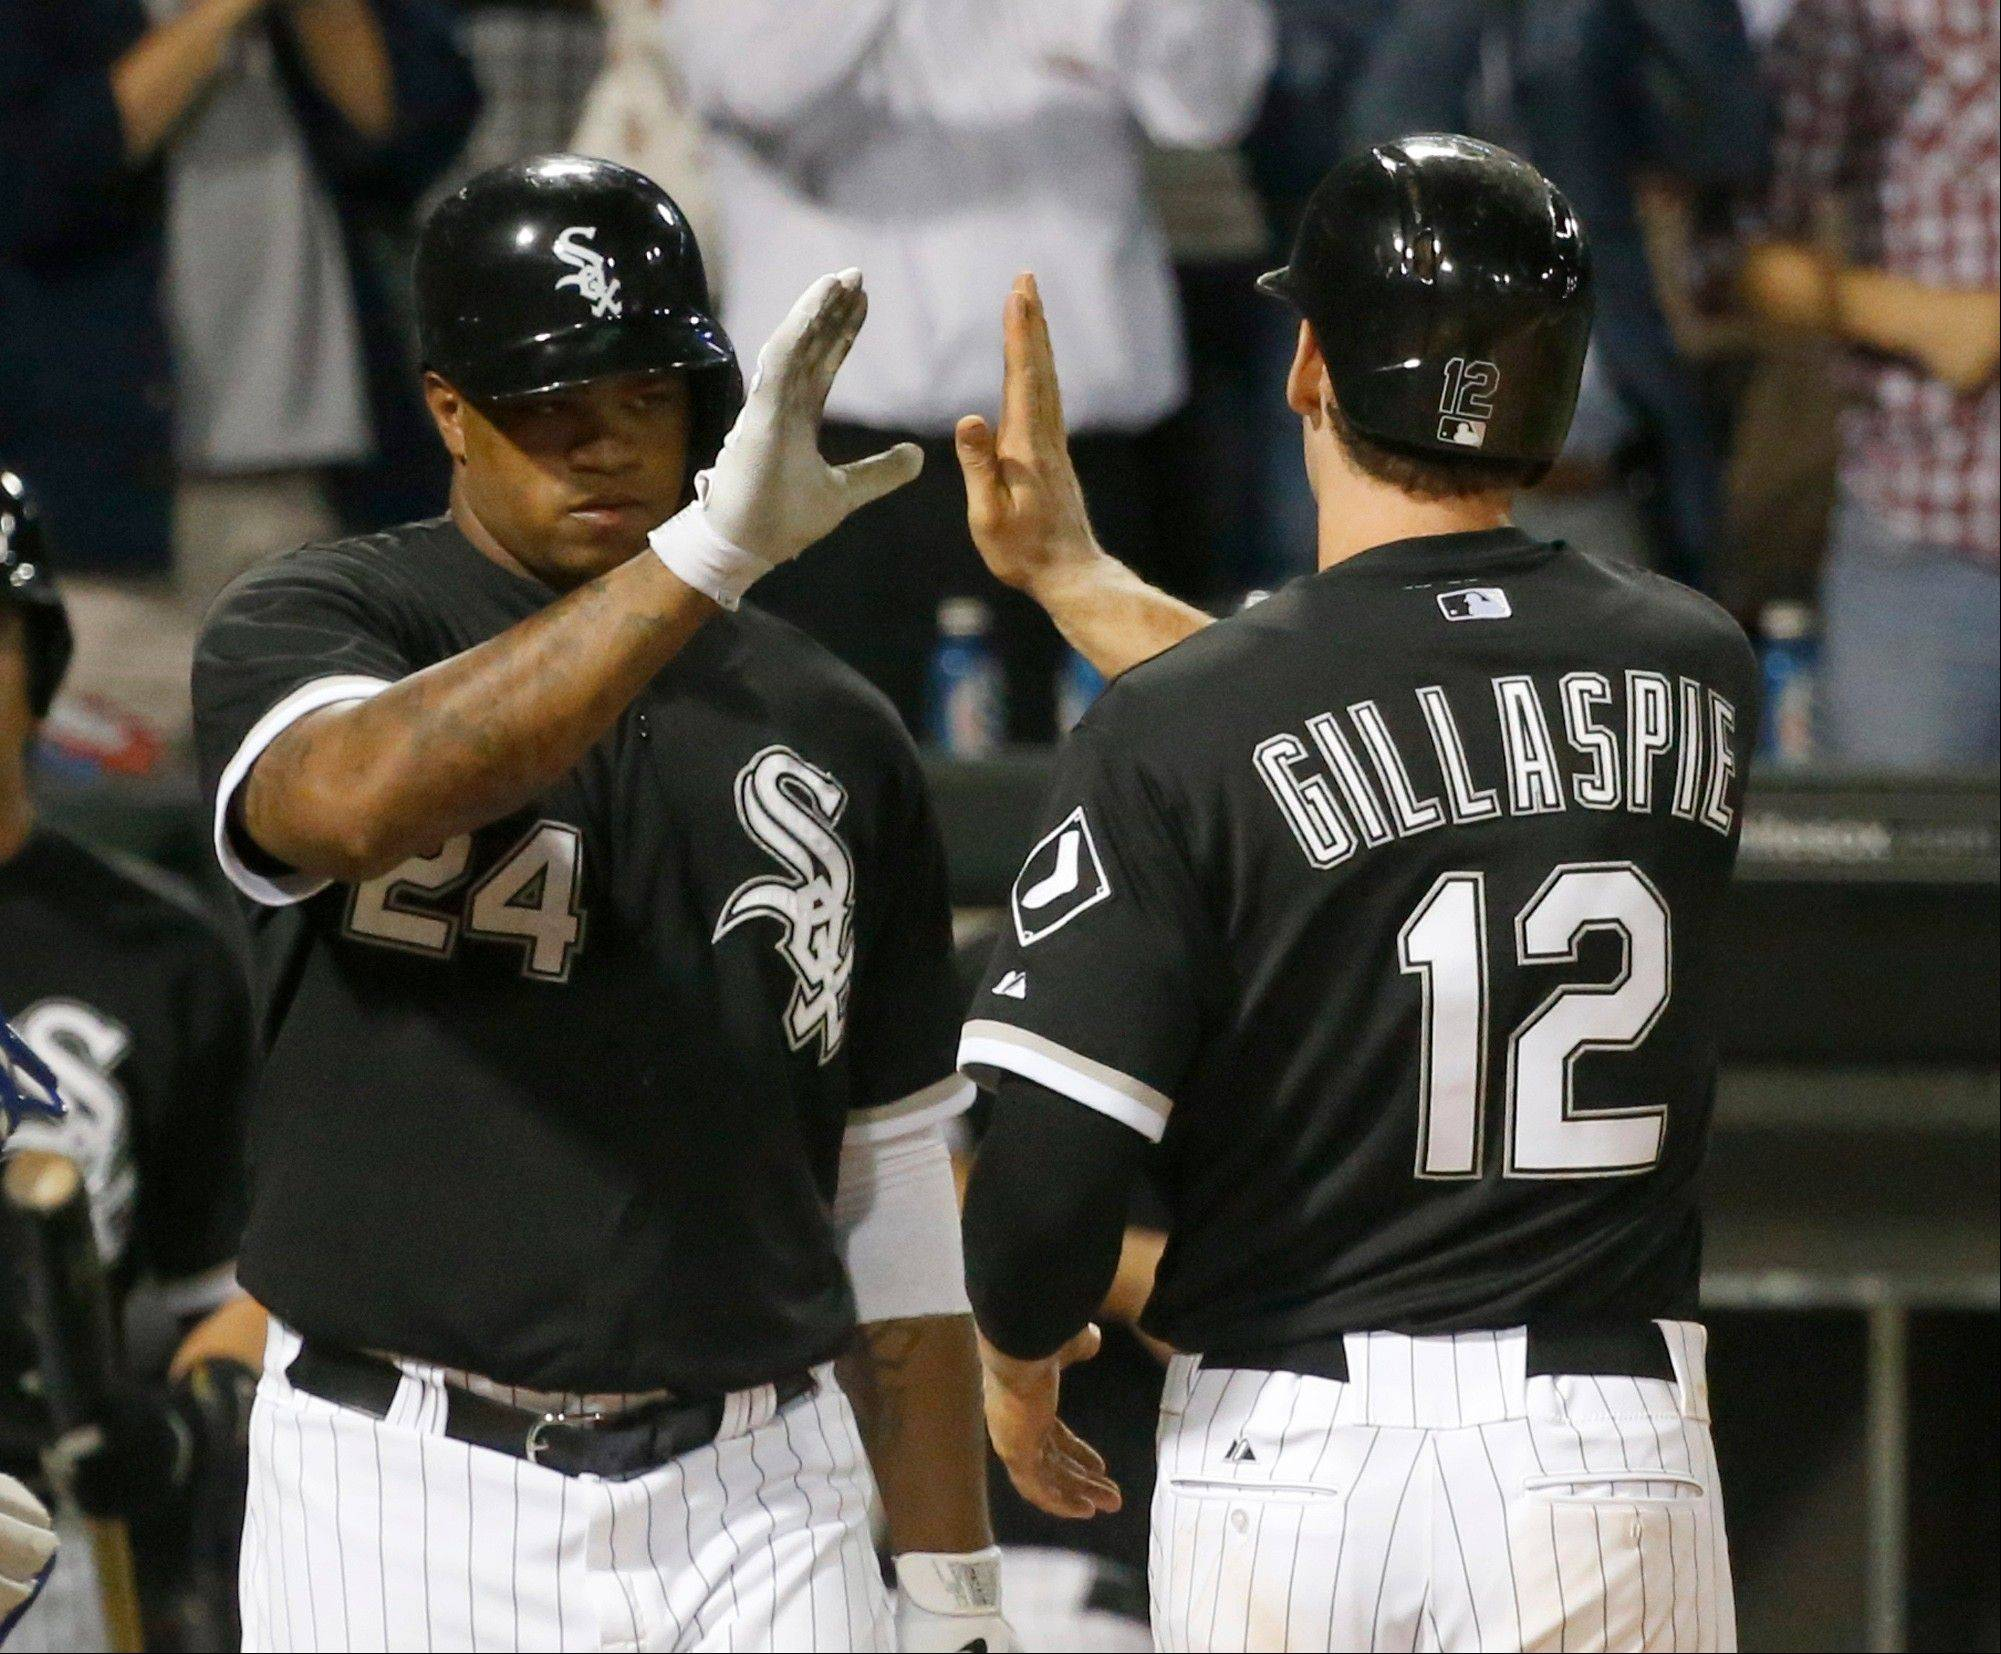 Chicago White Sox's Dayan Viciedo (24) greets teammate Conor Gillaspie outside the dugout after Gillaspie's home run off Kansas City Royals relief pitcher Kelvin Herrera during the eighth inning of a baseball game on Friday, July 26, 2013, in Chicago.